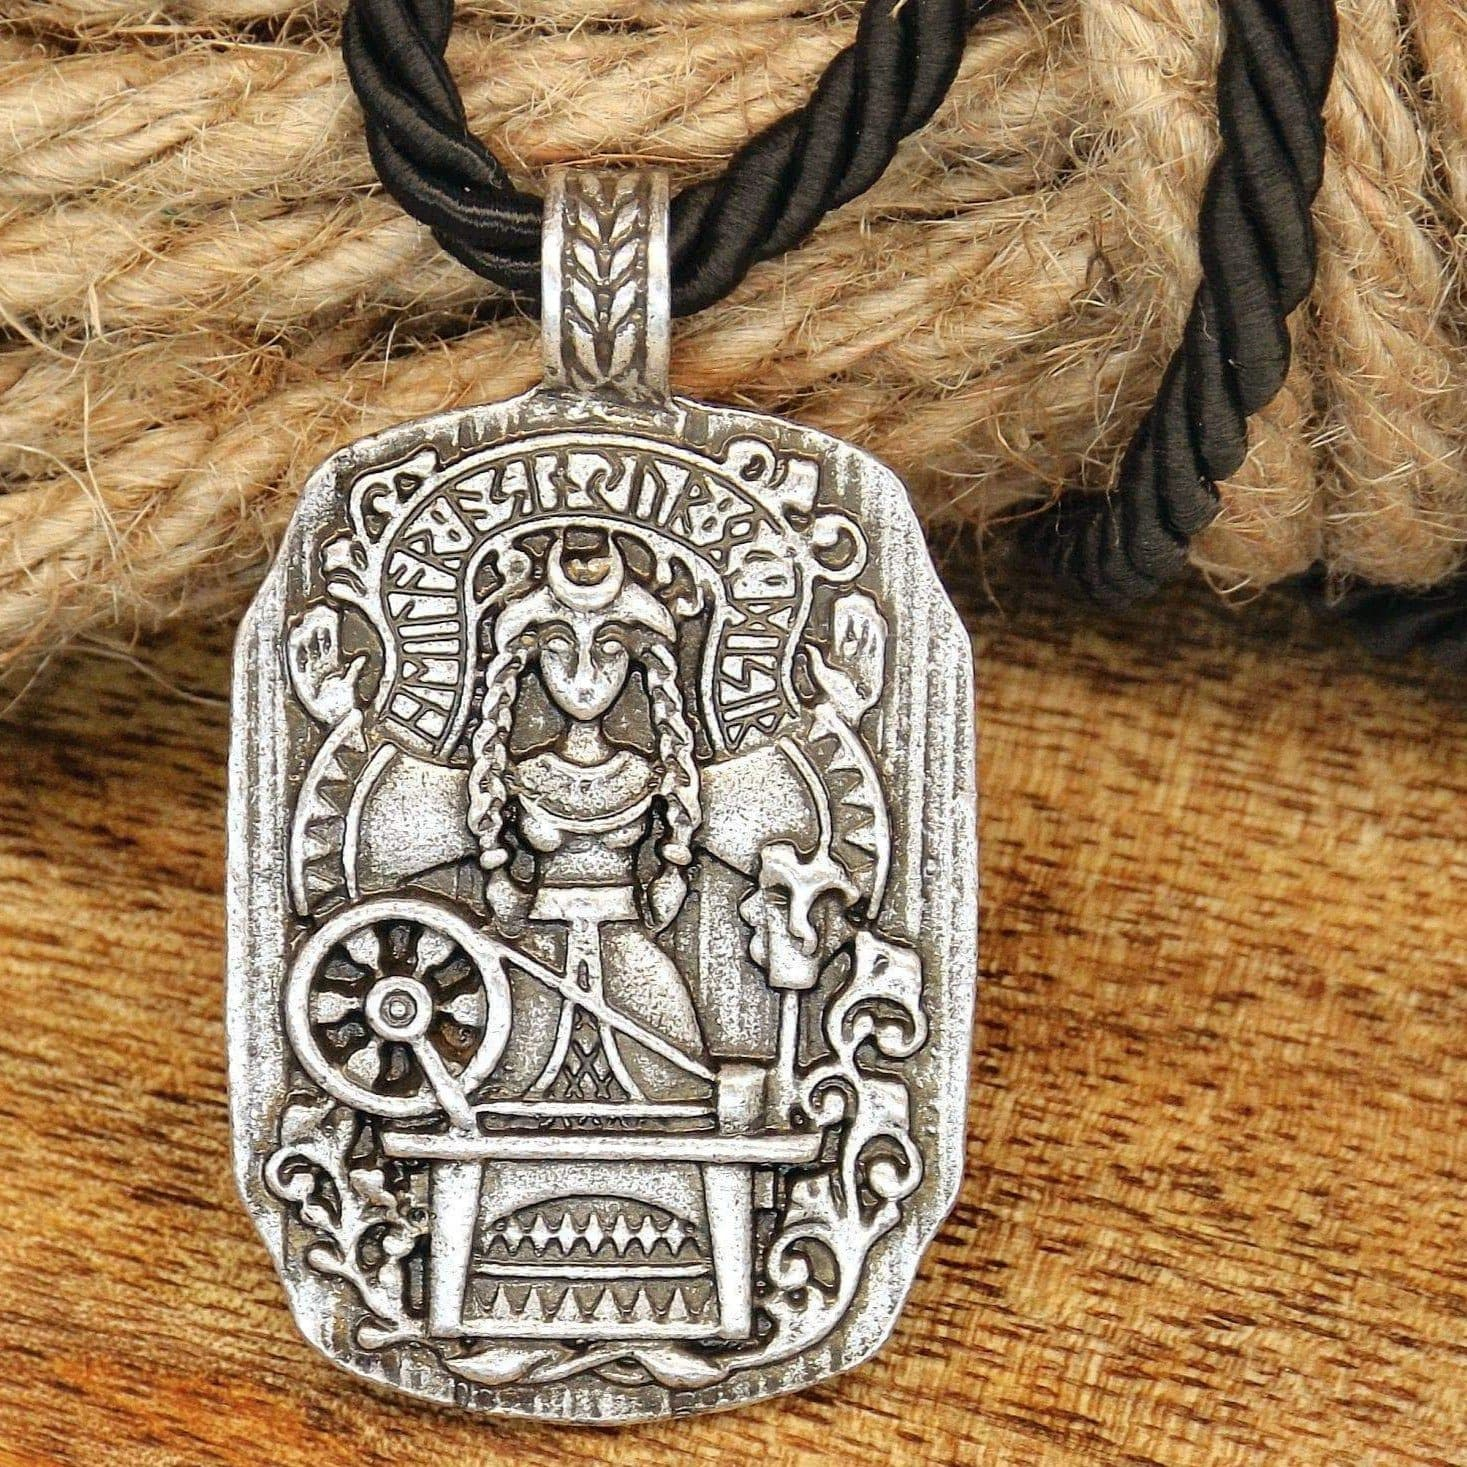 Vikings Mother Goddess Frigg Protection Amulet Necklace & Pendant